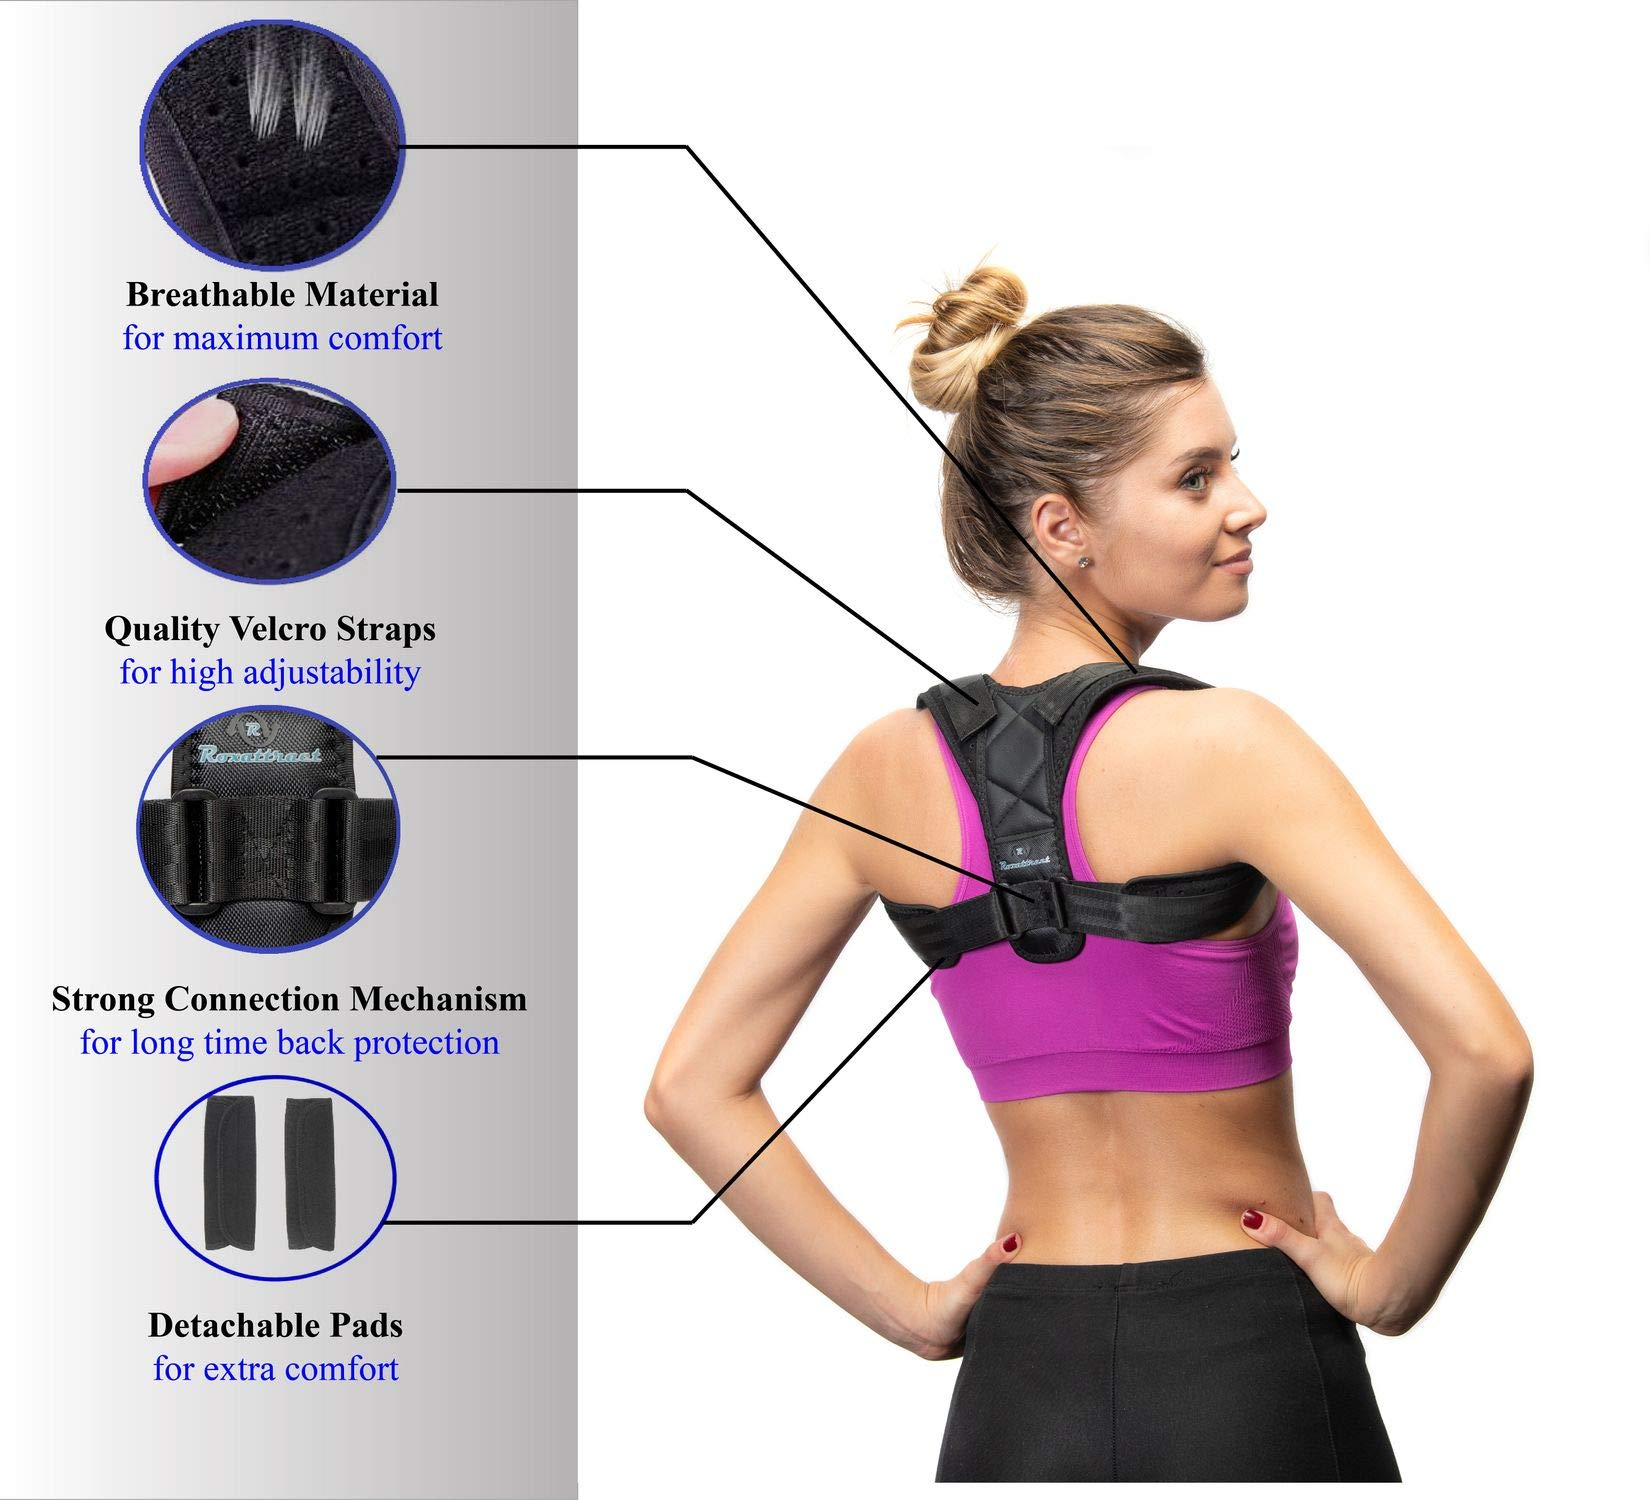 Back Posture Corrector for Women and Men-Breathable and Comfortable Clavicle Brace for Improving Posture-Adjustable and Discreet Clavicle Support Brace for Slouching & Hunching by Roxattract (Image #3)